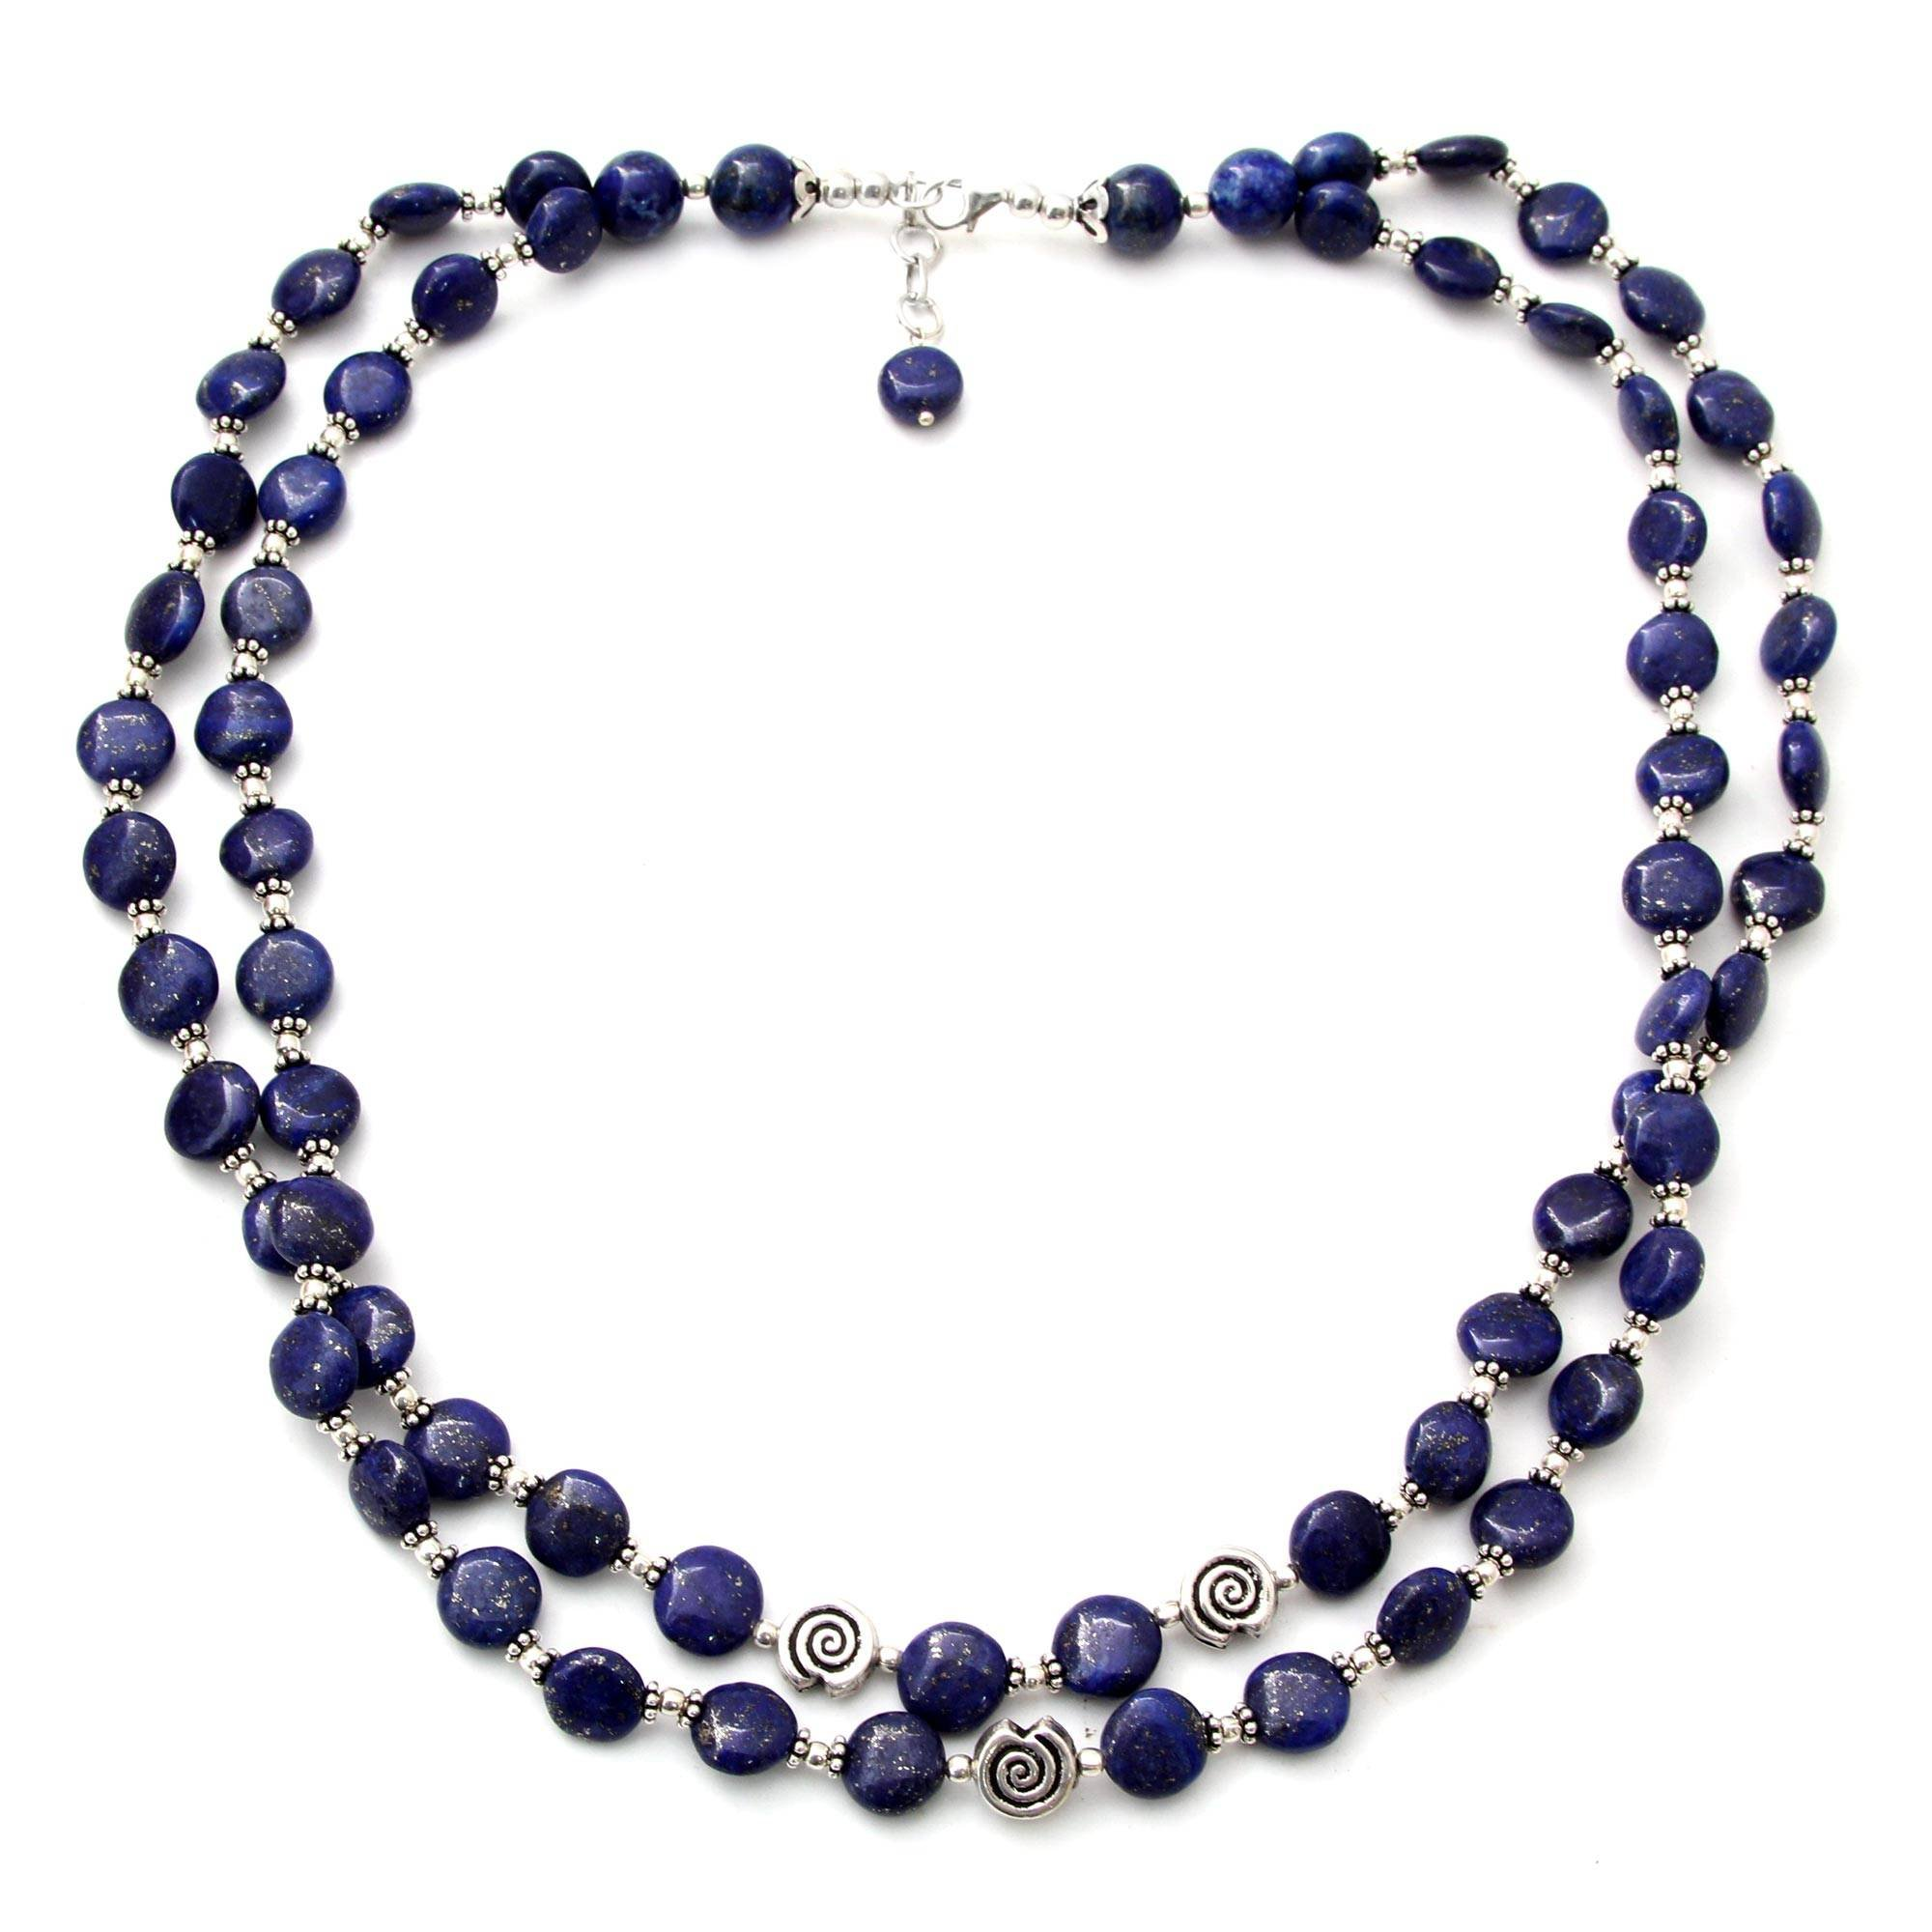 NOVICA Lapis Lazuli .925 Sterling Silver Beaded Strand Necklace 'Midnight Breeze' by NOVICA